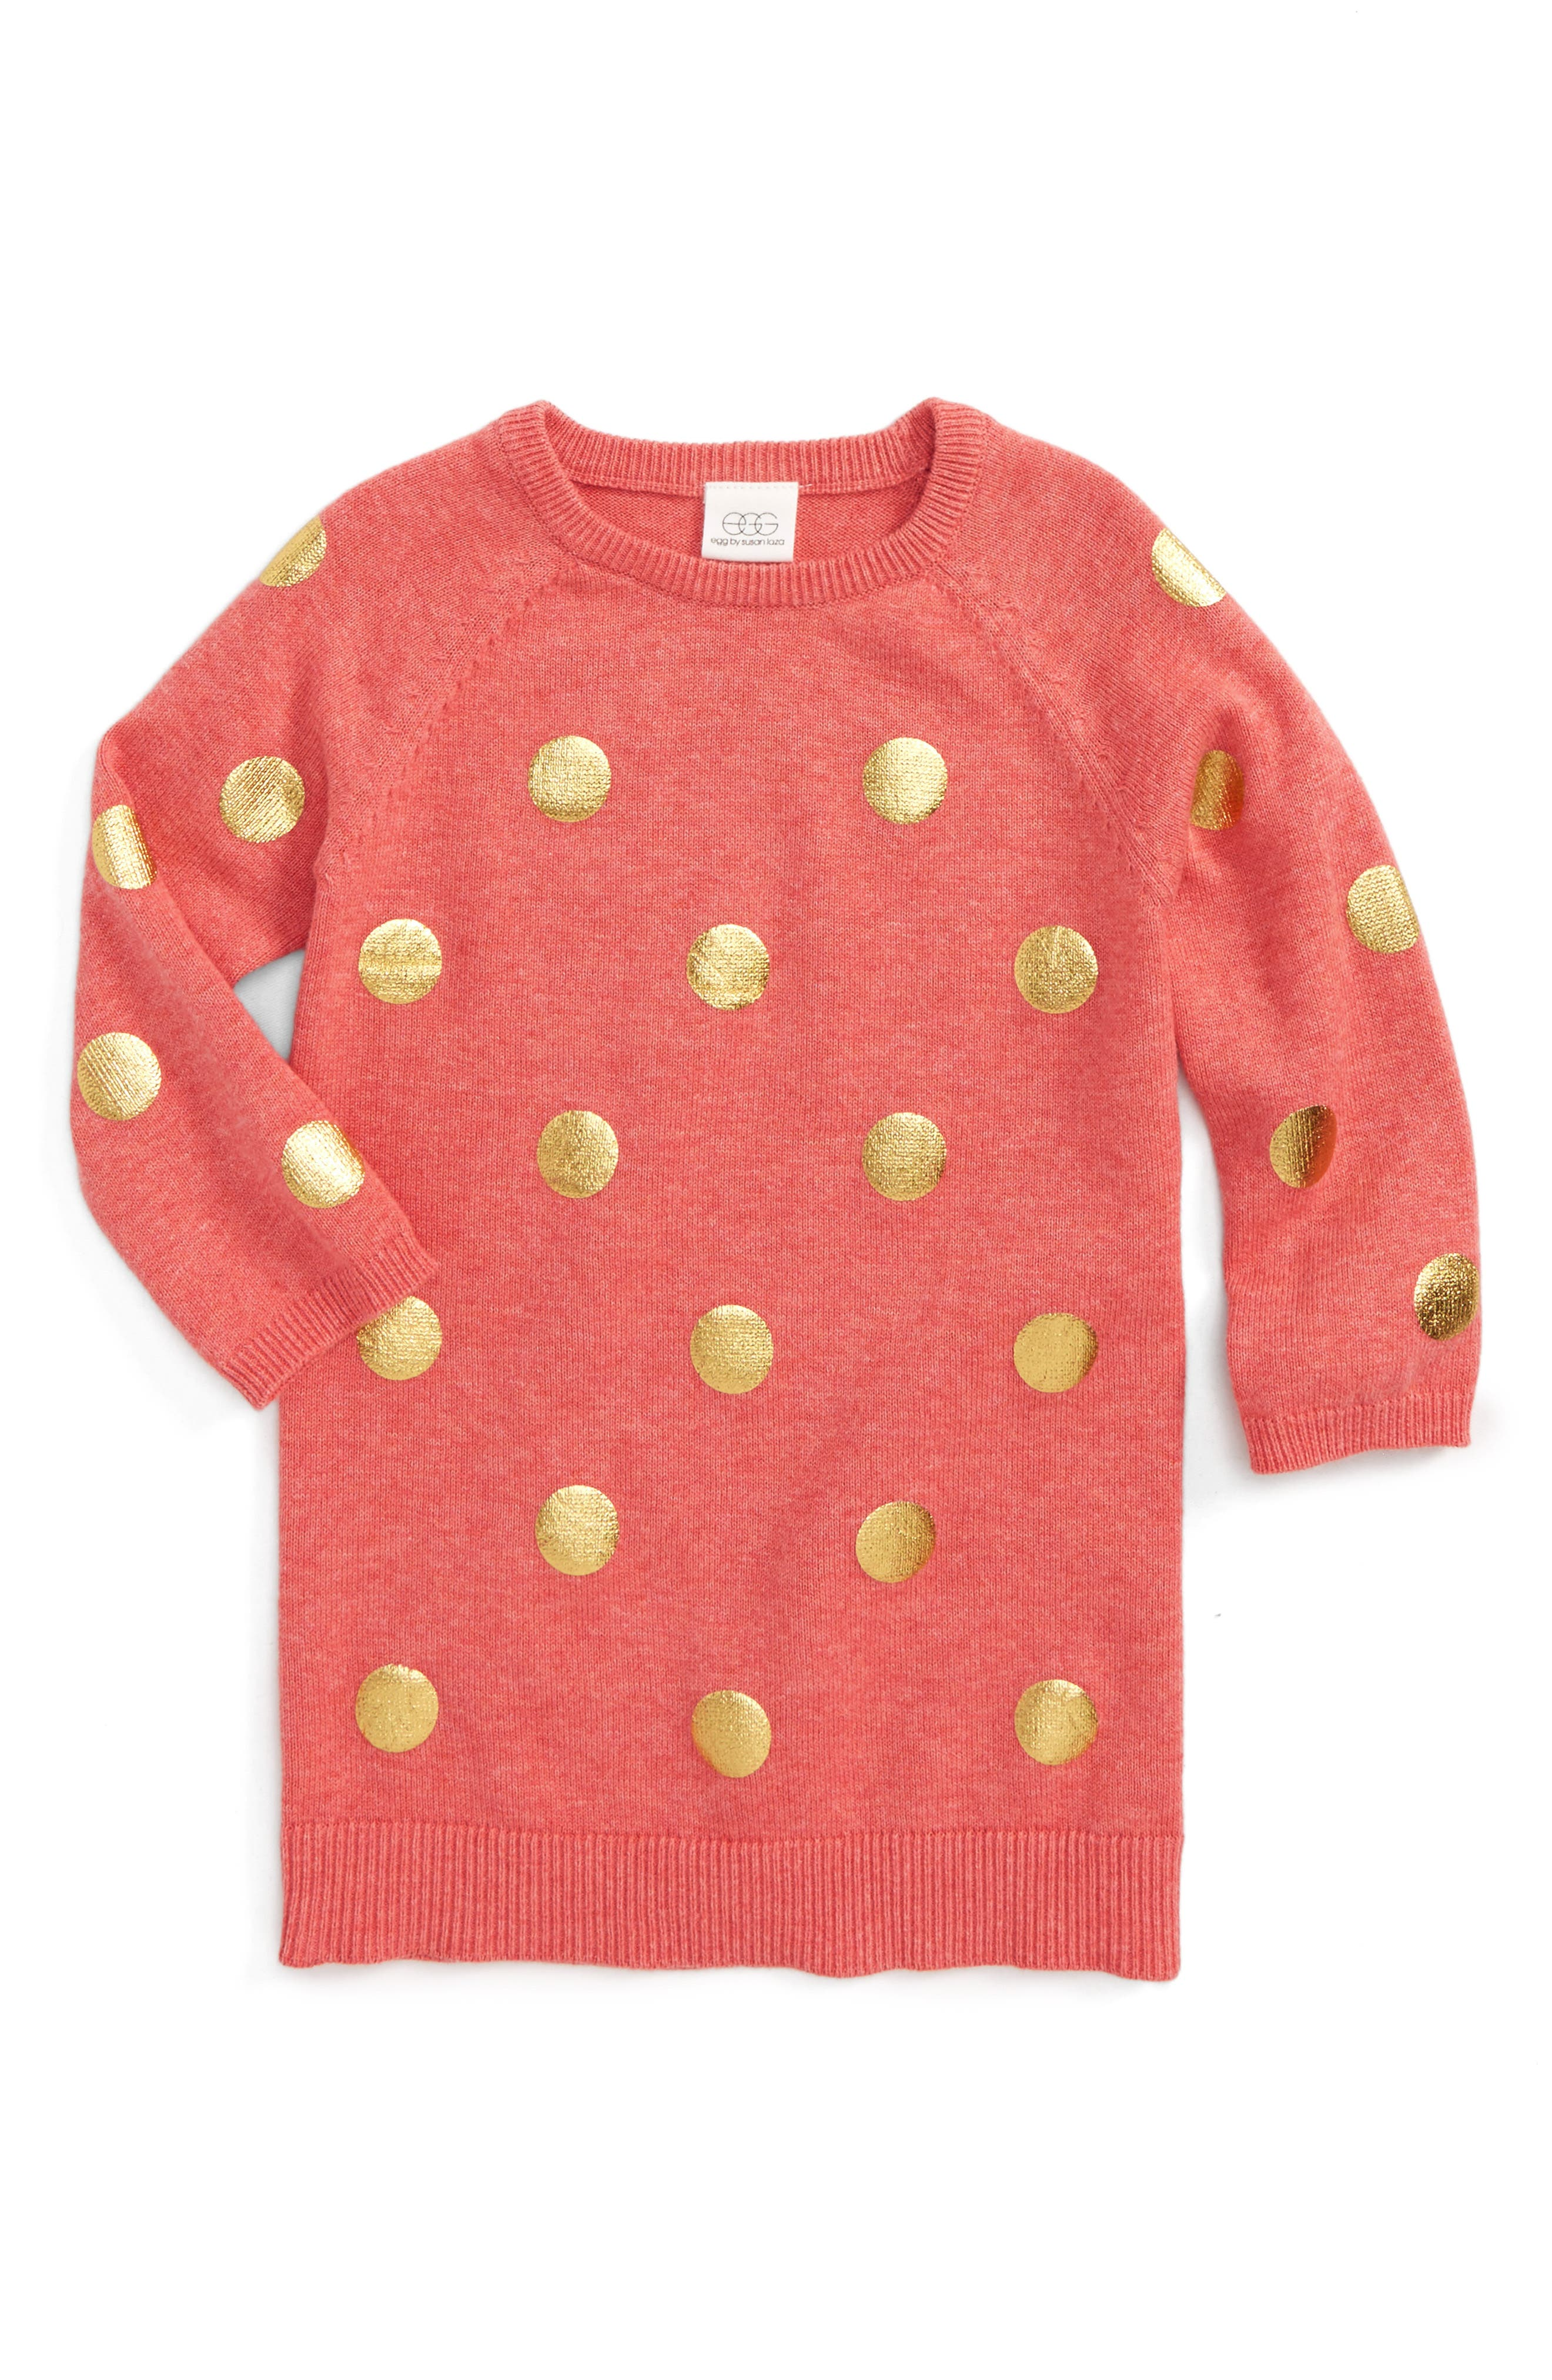 EGG BY SUSAN LAZAR Emily Sweater Dress